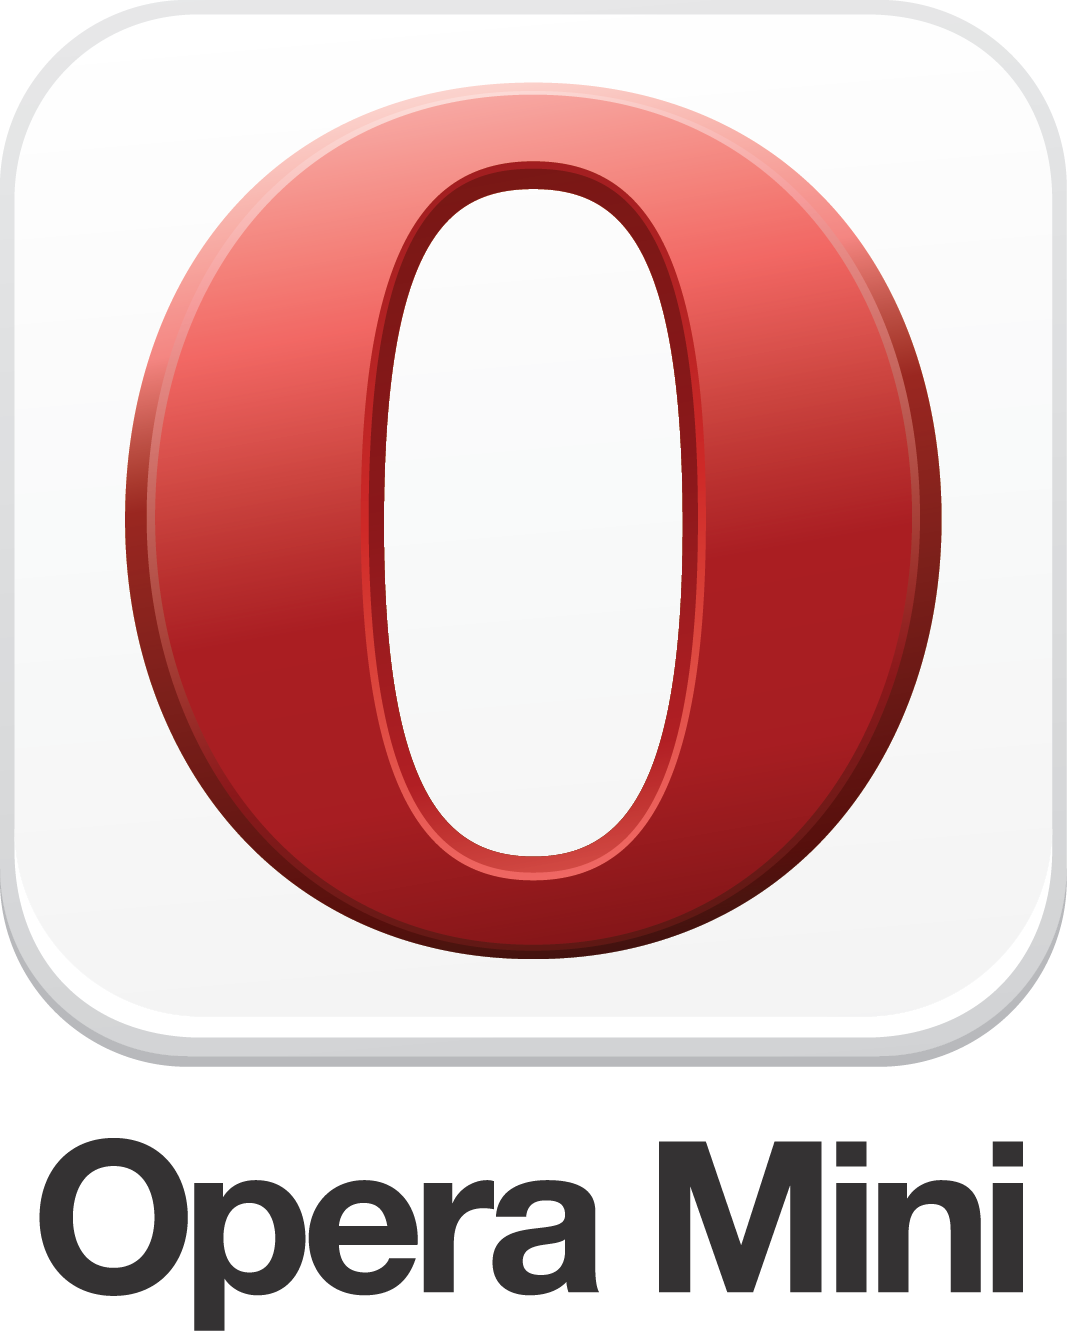 Opera for mobile devices